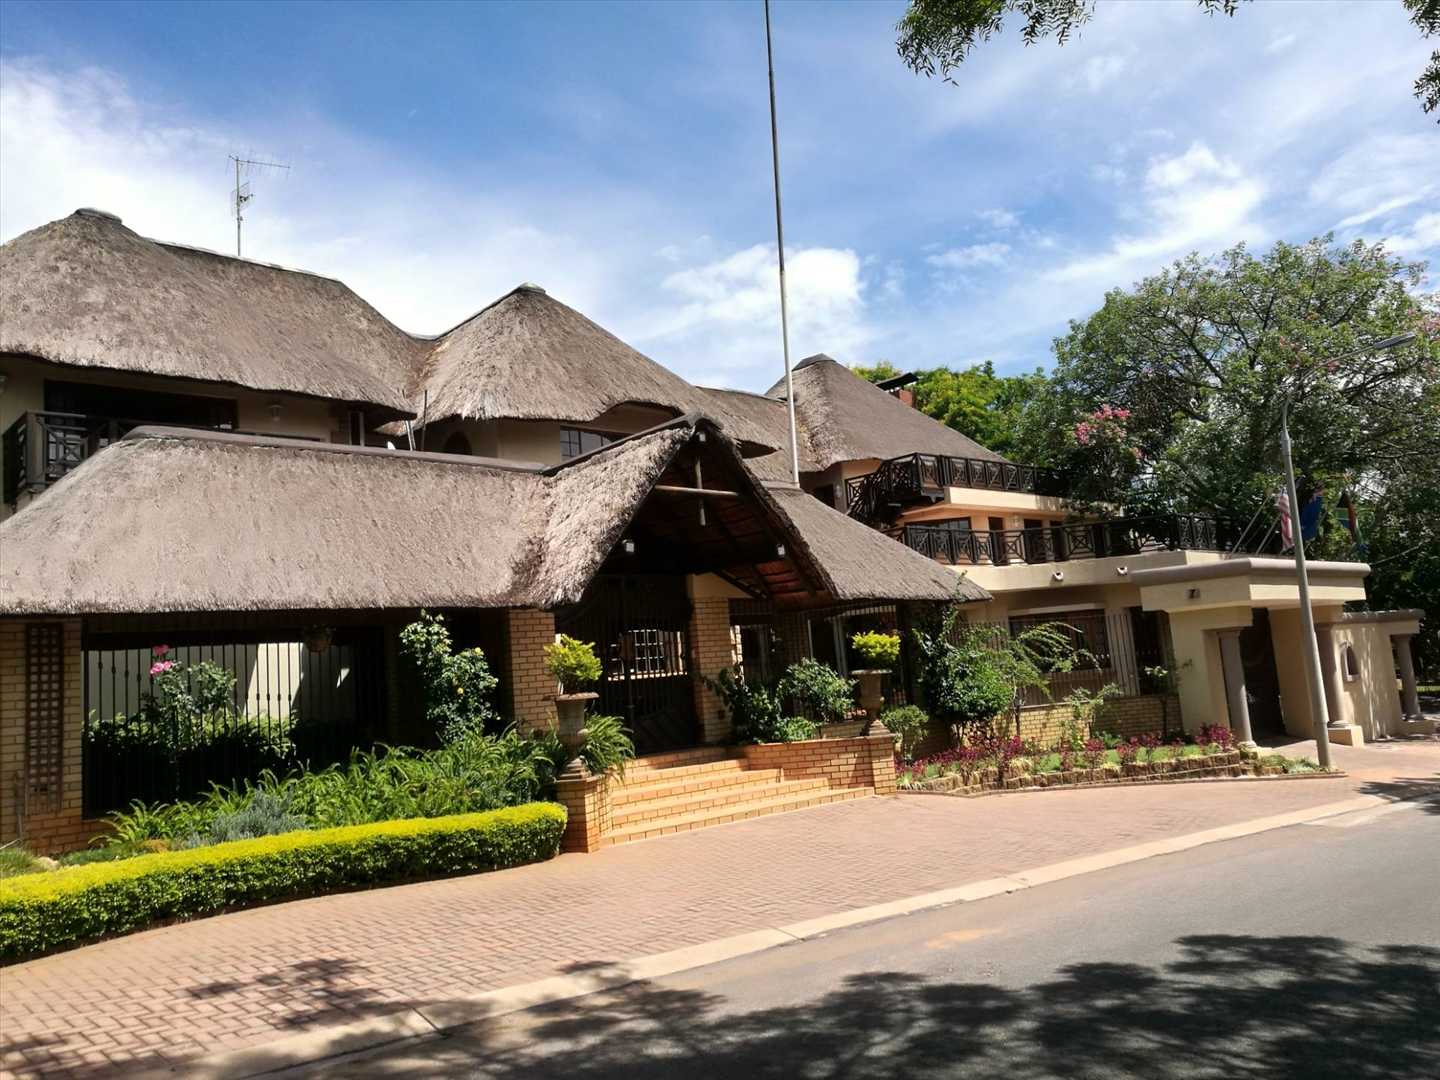 16 Bedroom House in Cashan, Rustenburg For Sale for R 14,500,000 #1862286